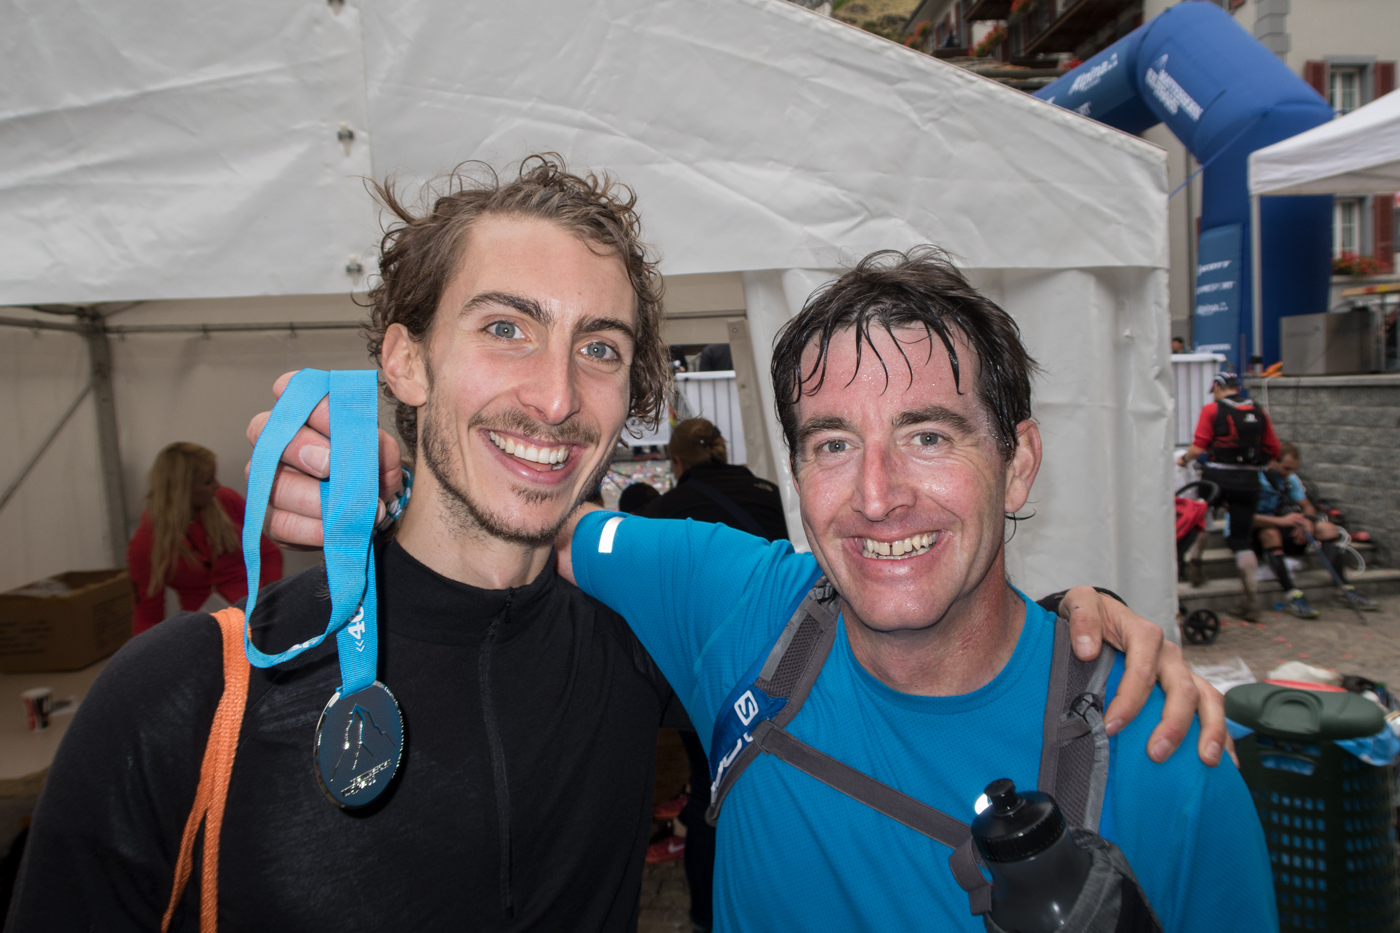 Paul and David after the Ultraks 46K